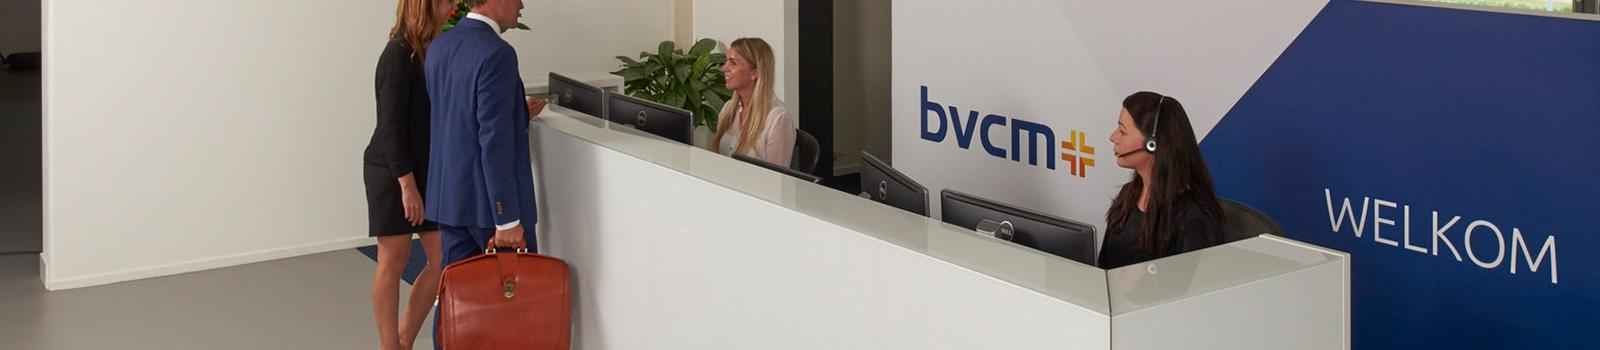 Front-Office | BVCM